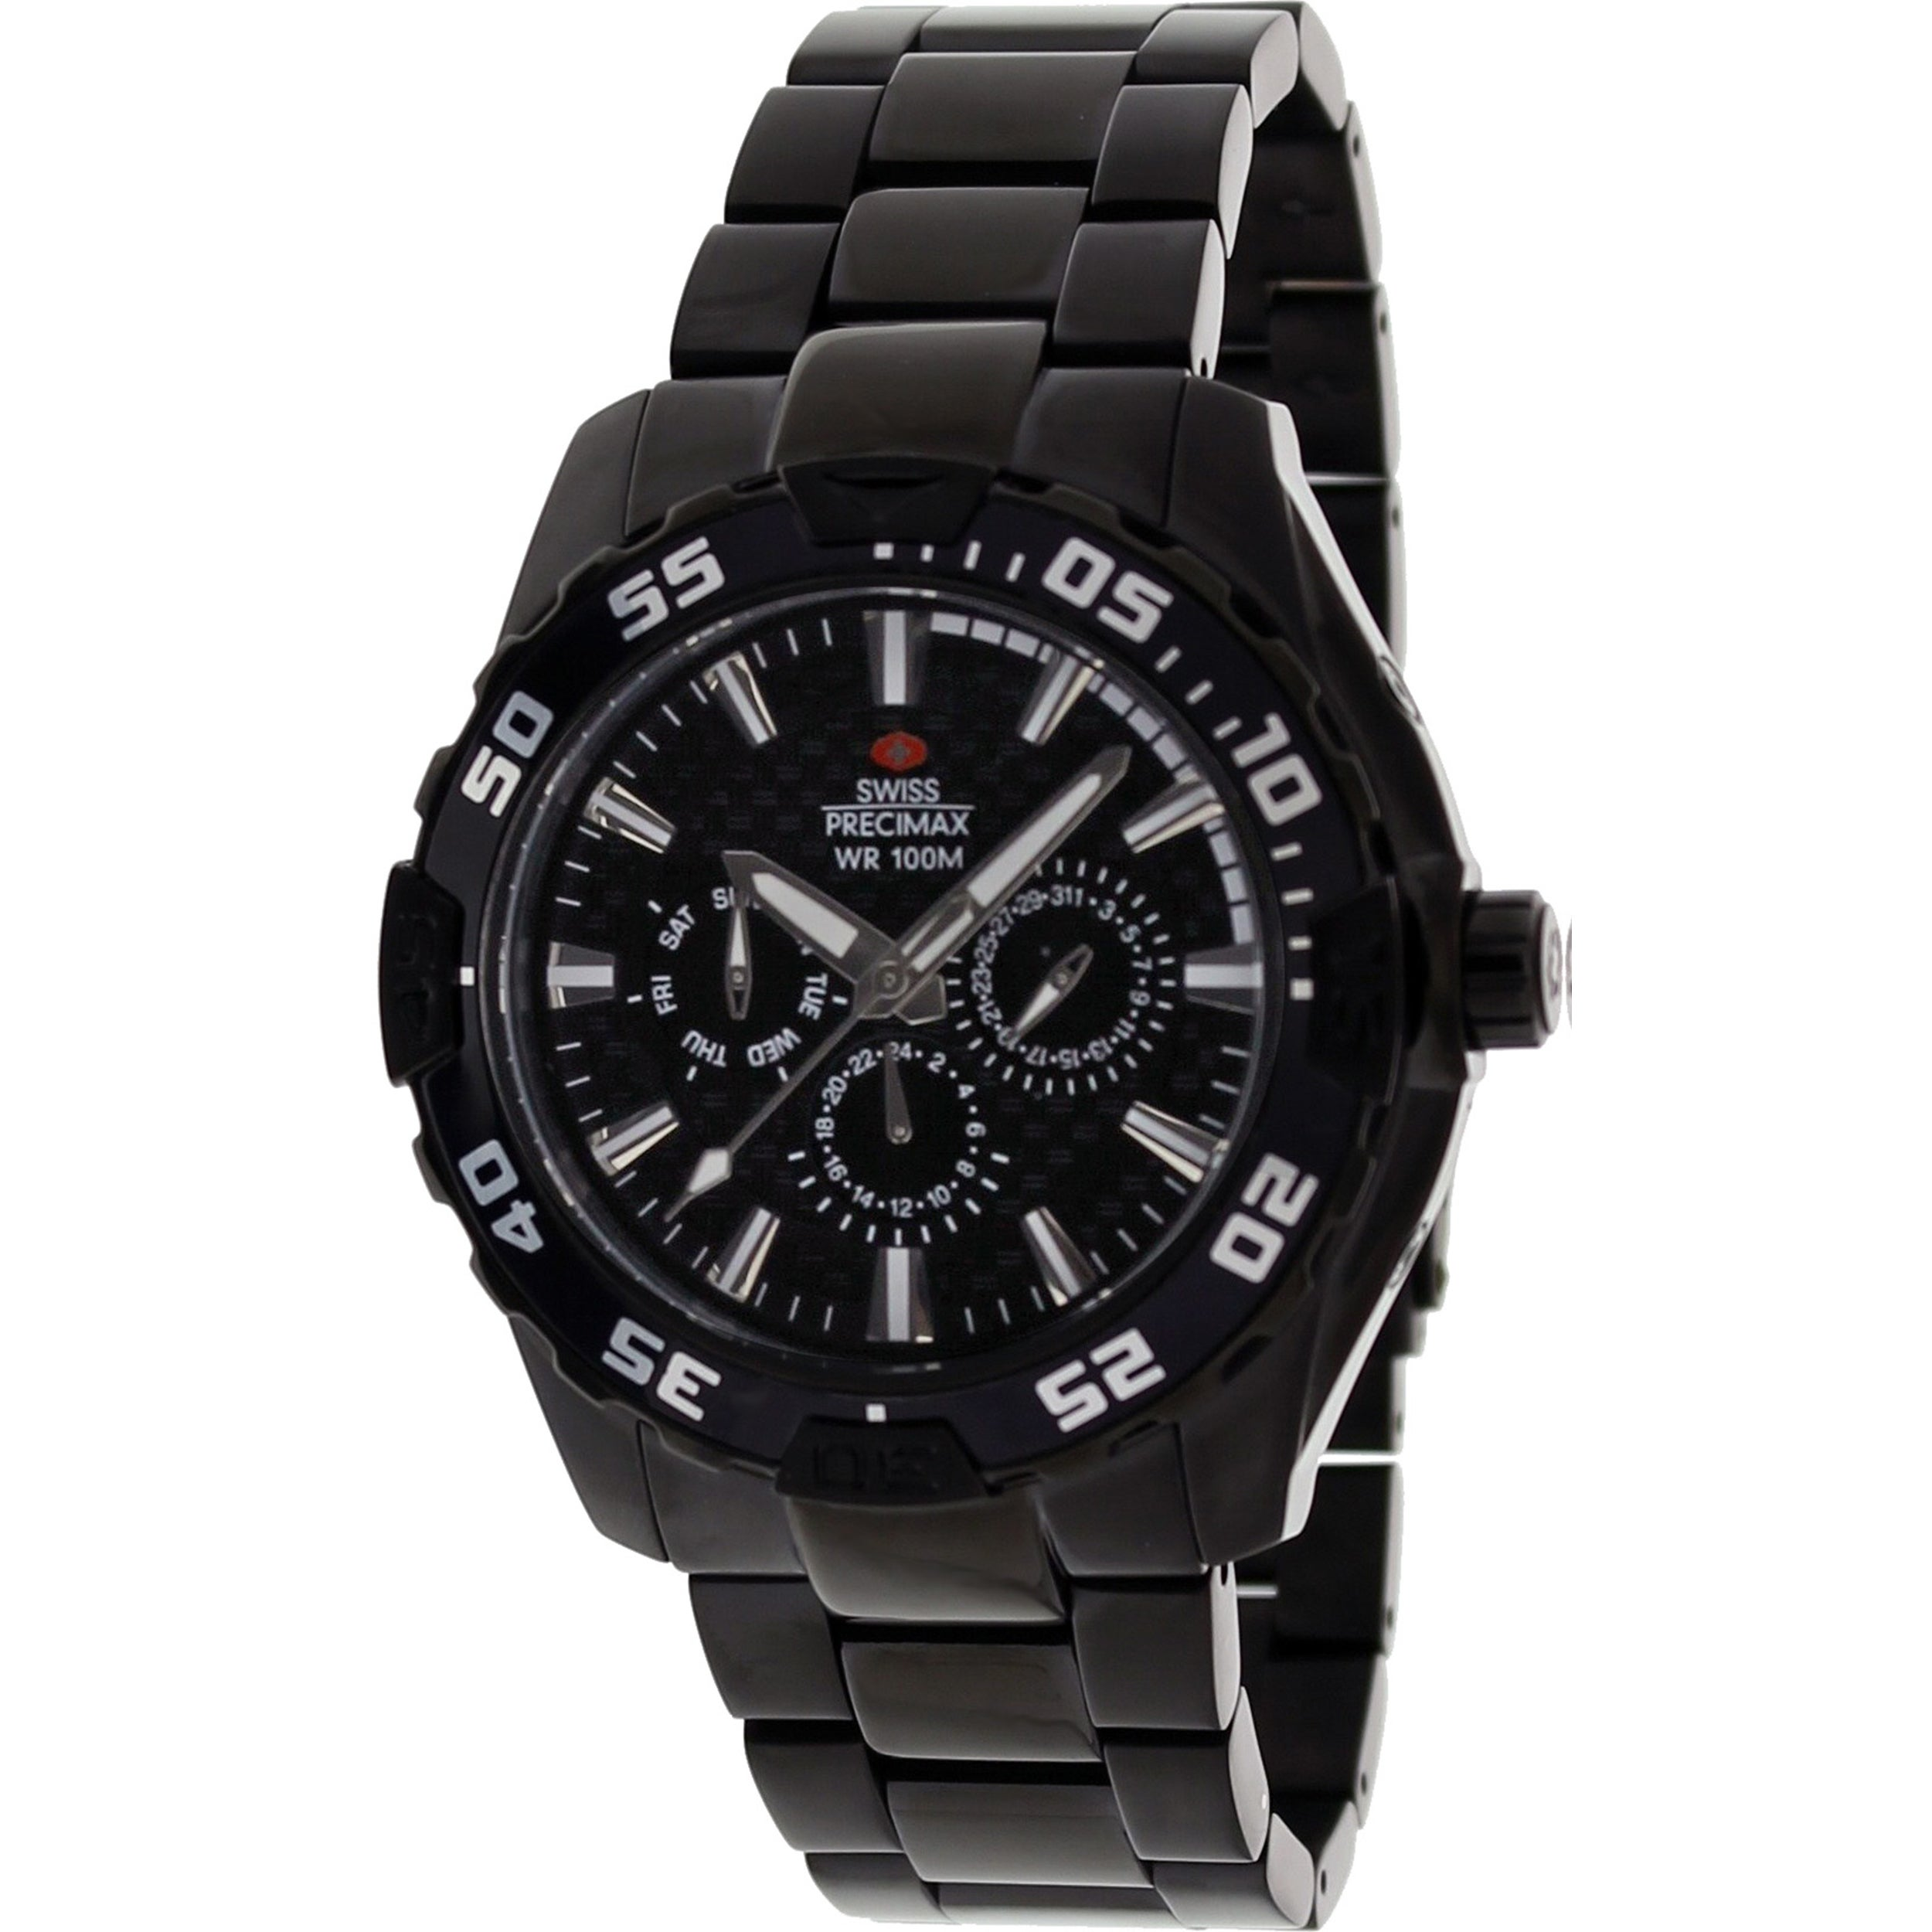 Swiss Precimax Men's Formula 7 XT Black Stainless Steel Watch with Black Dial